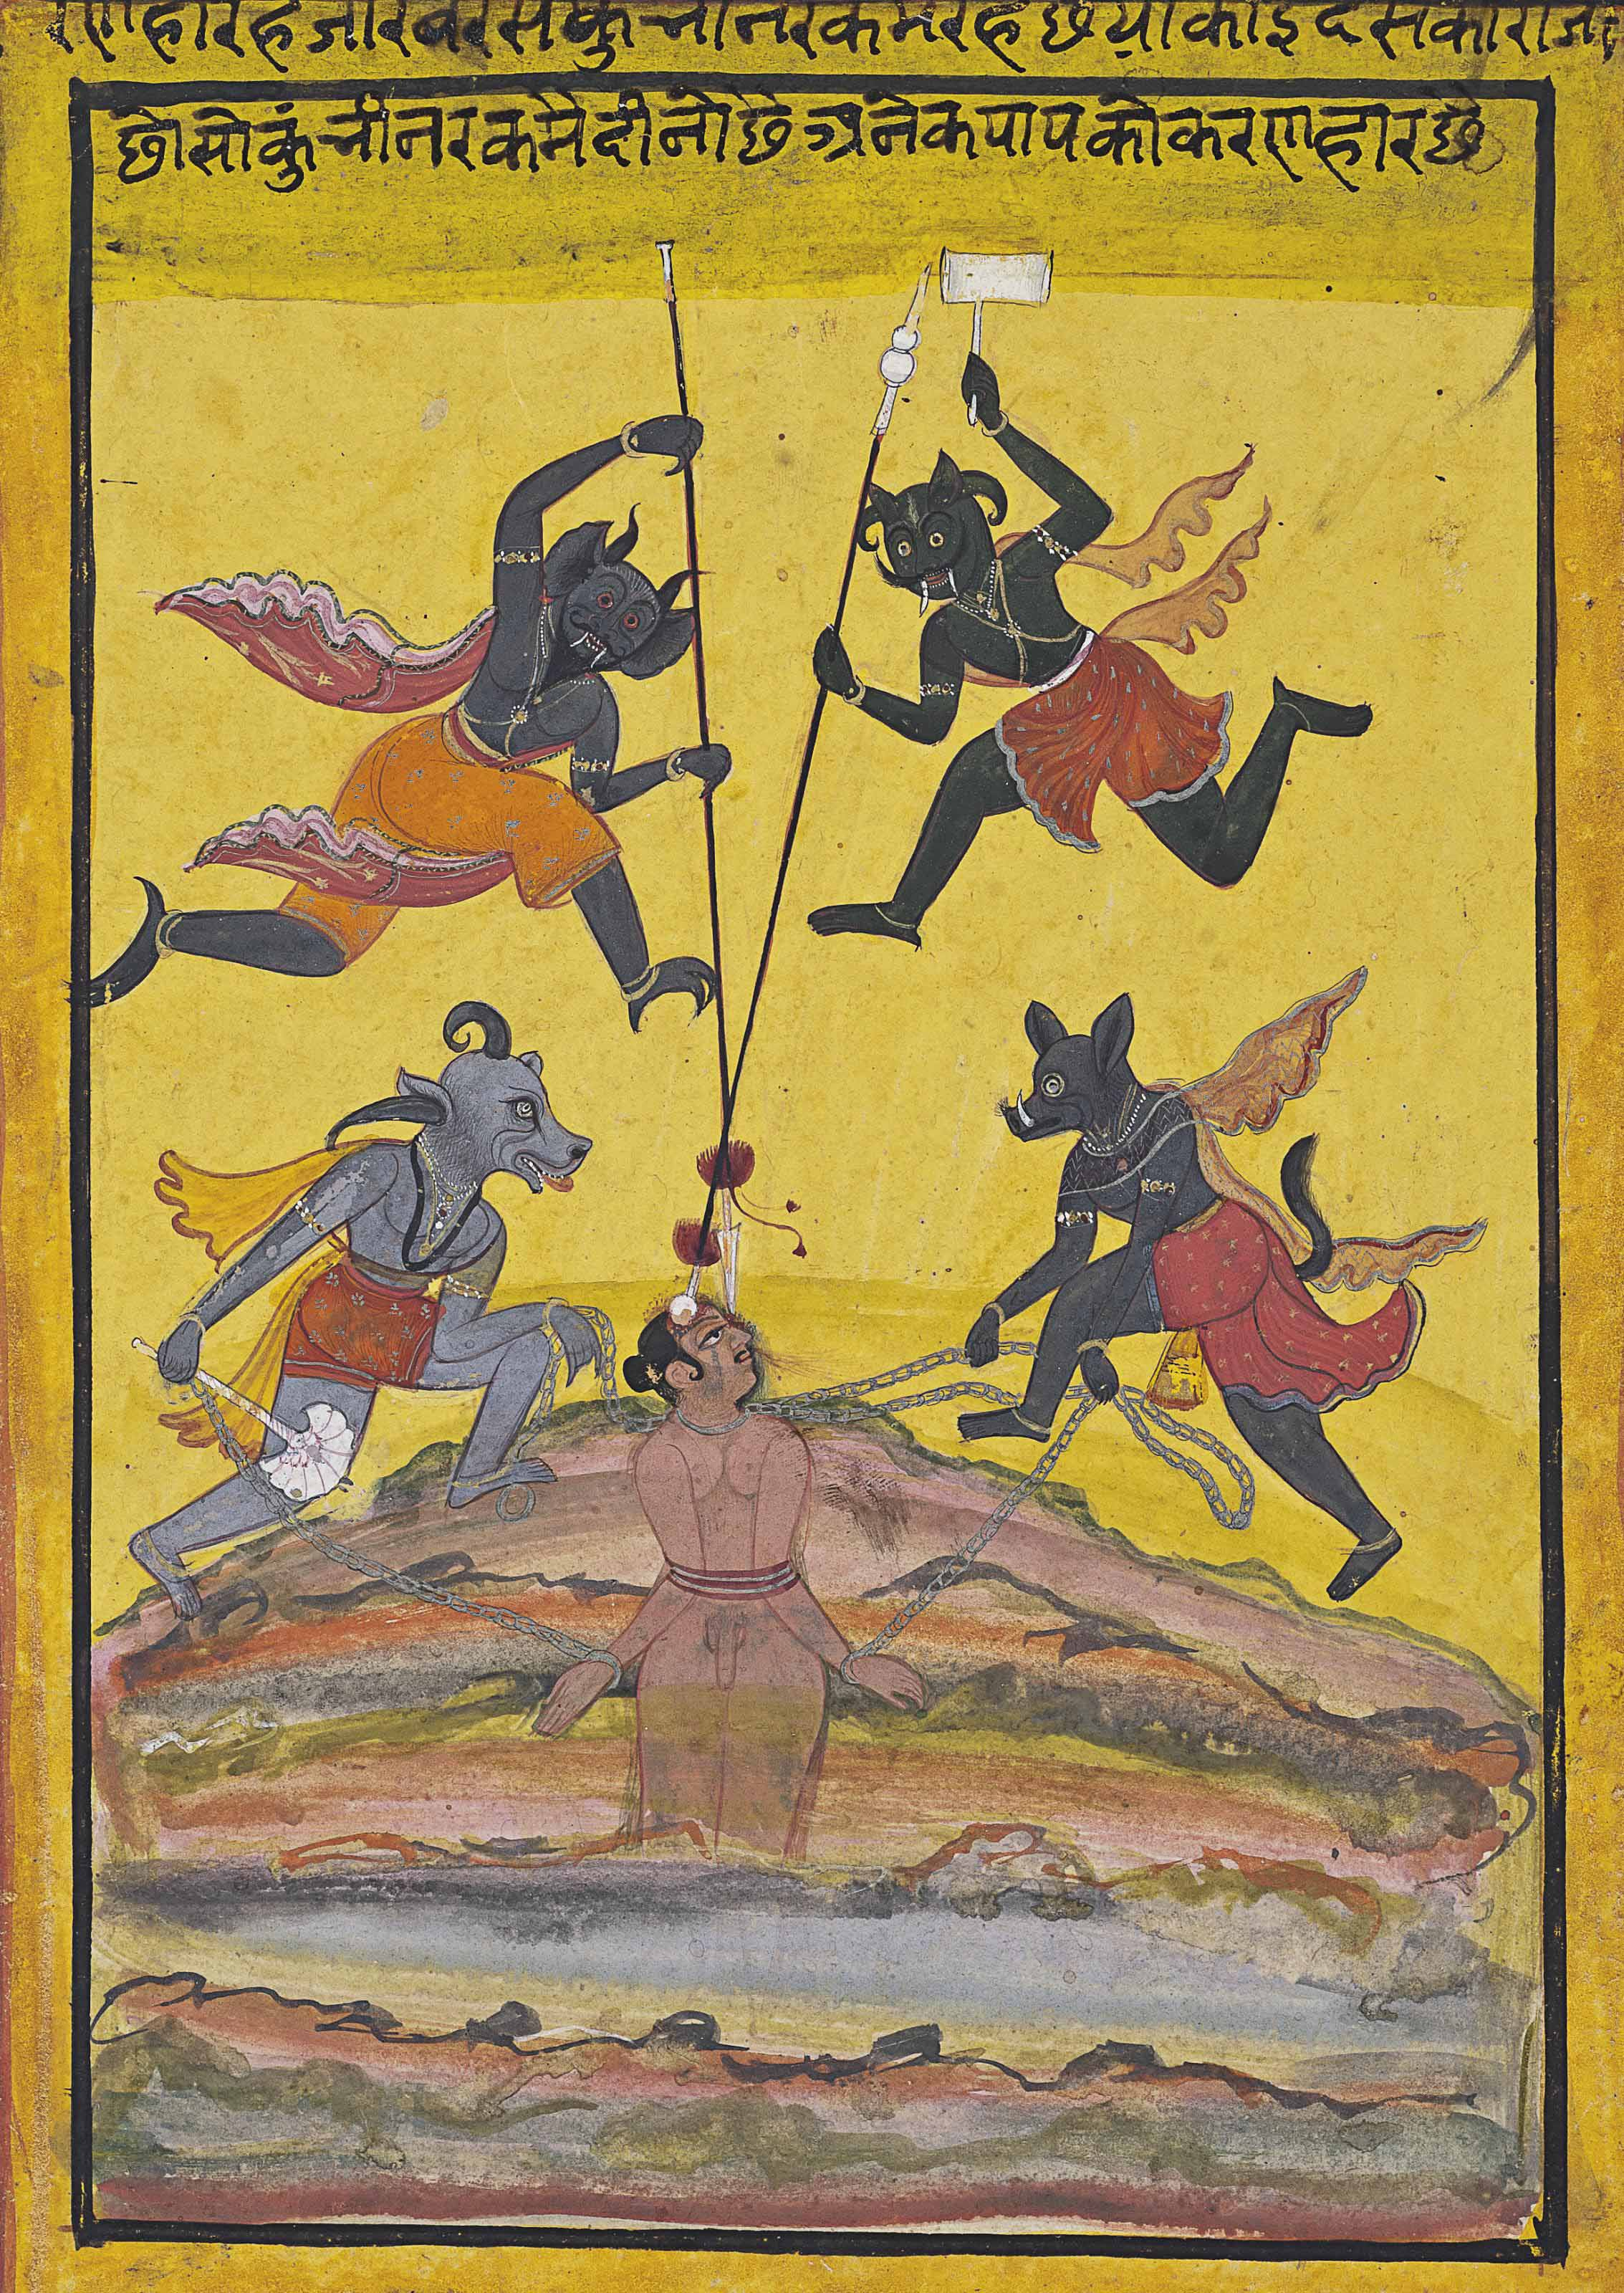 An Illustration from a Swarga-